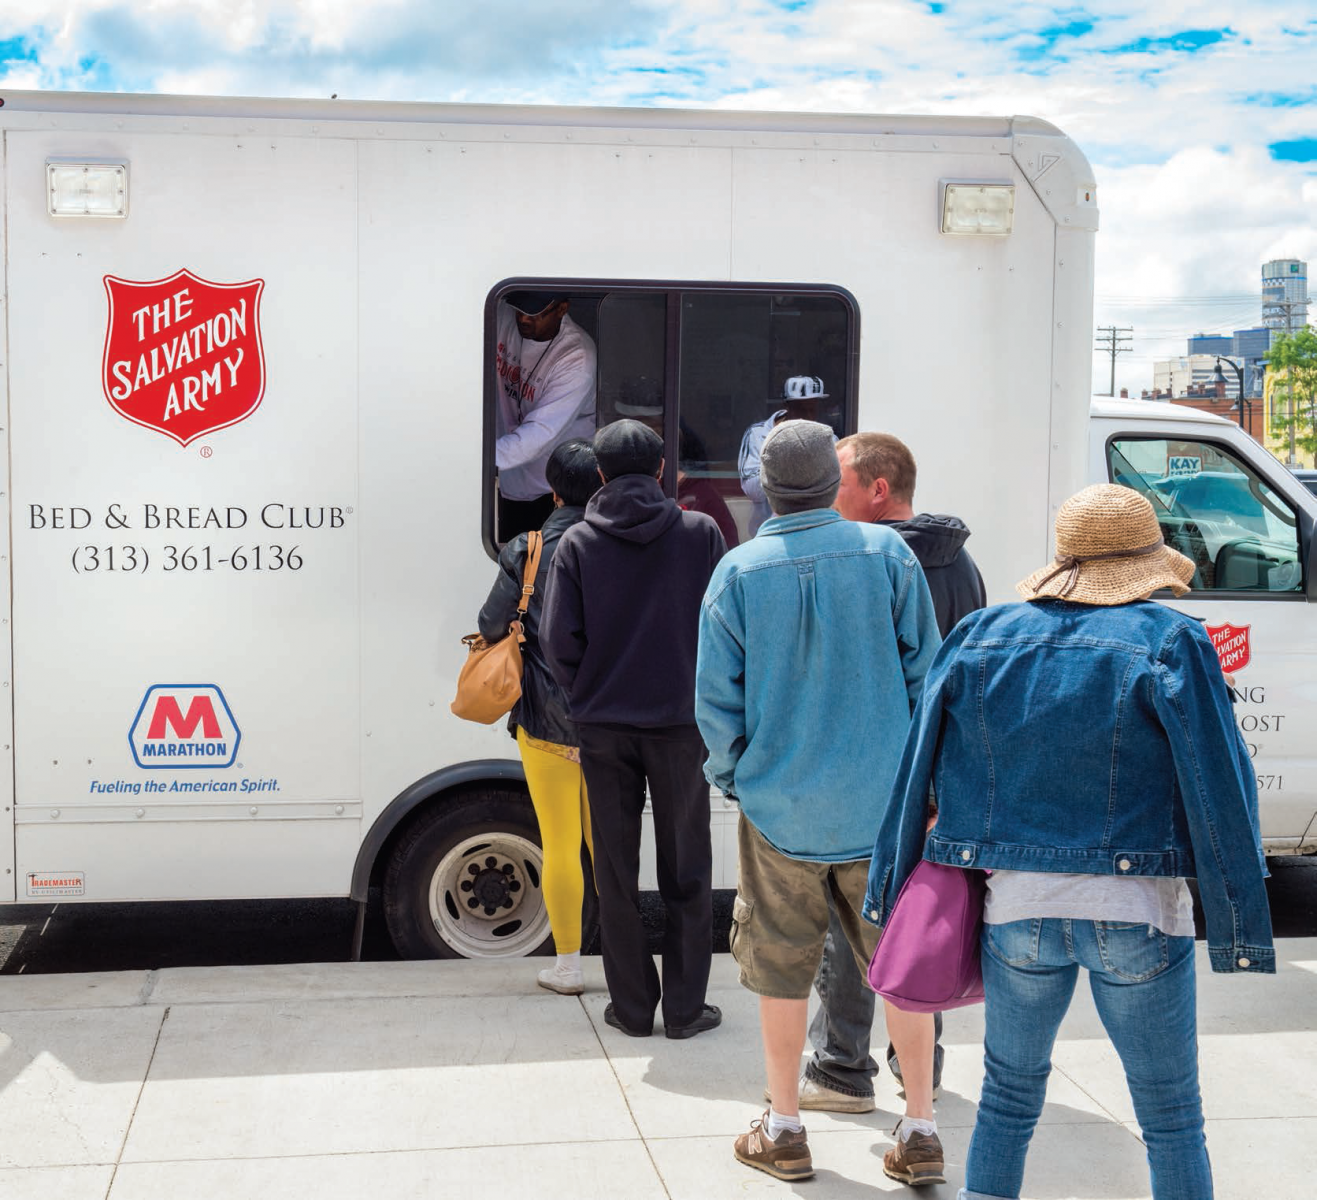 The Salvation Army's Bed & Bread Club truck, fueled by MPC, provides meals to Detroit residents in need.